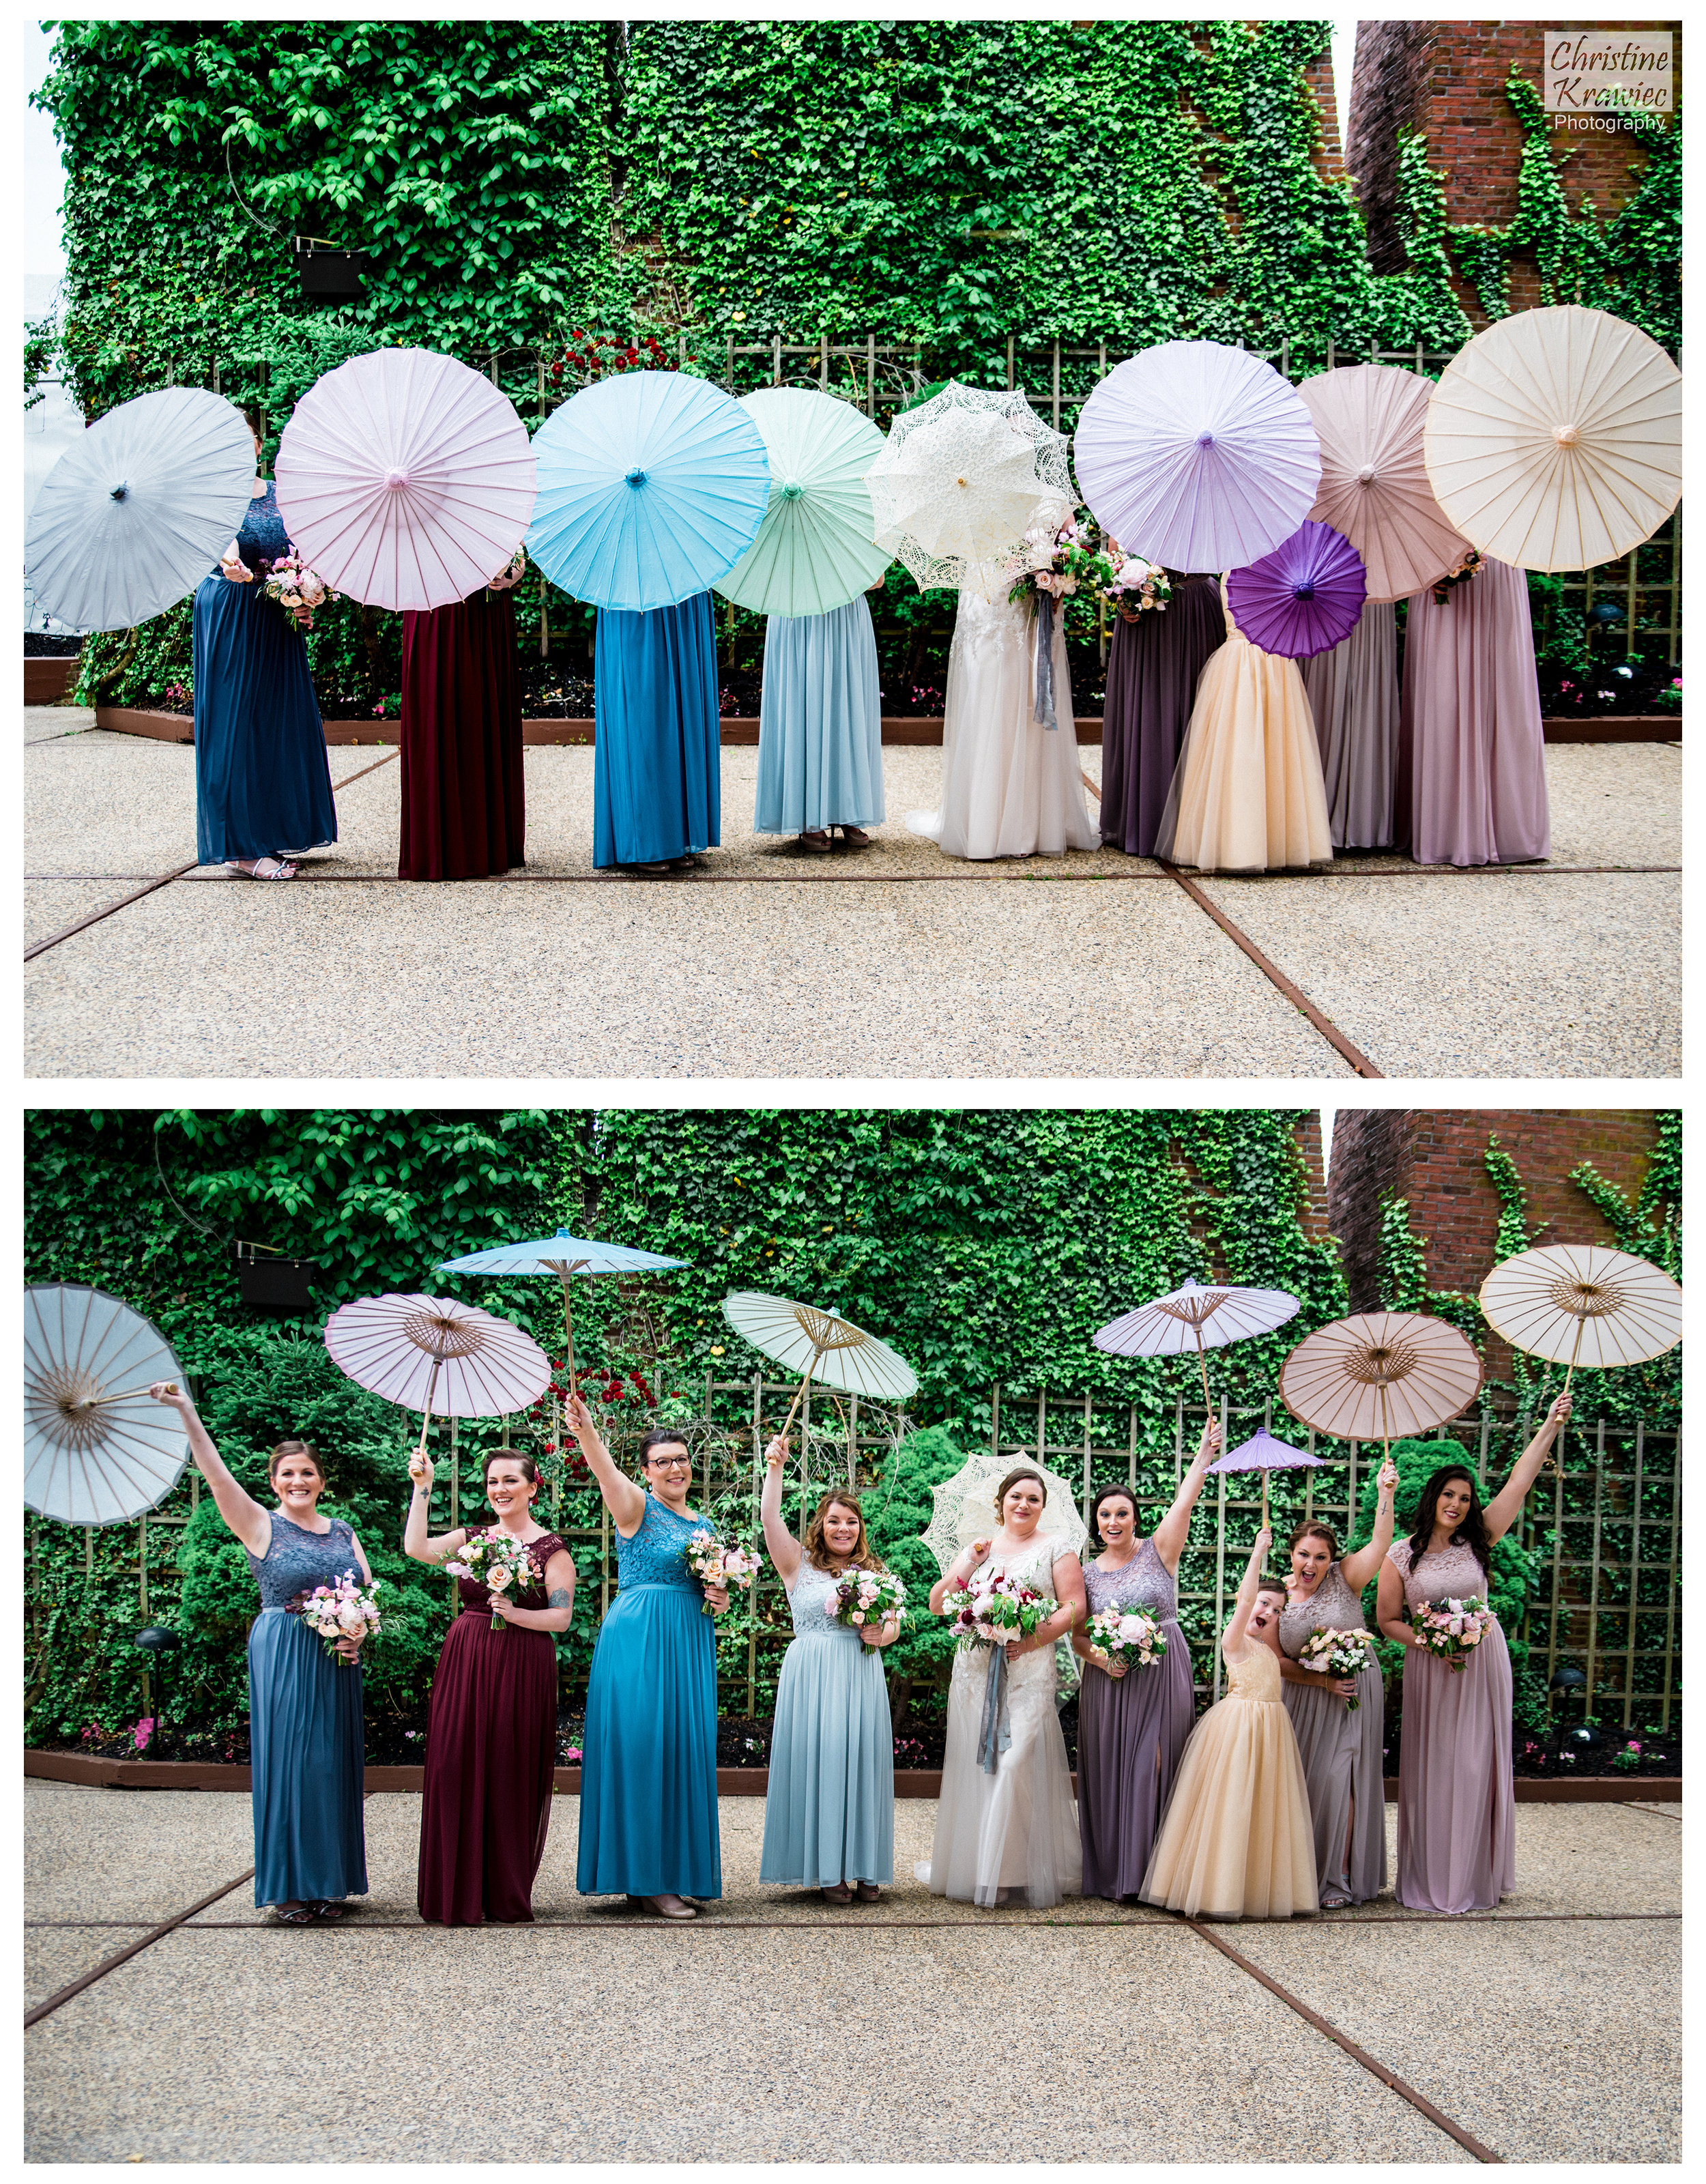 9 - bridesmaids_parasole_umbrella.jpg